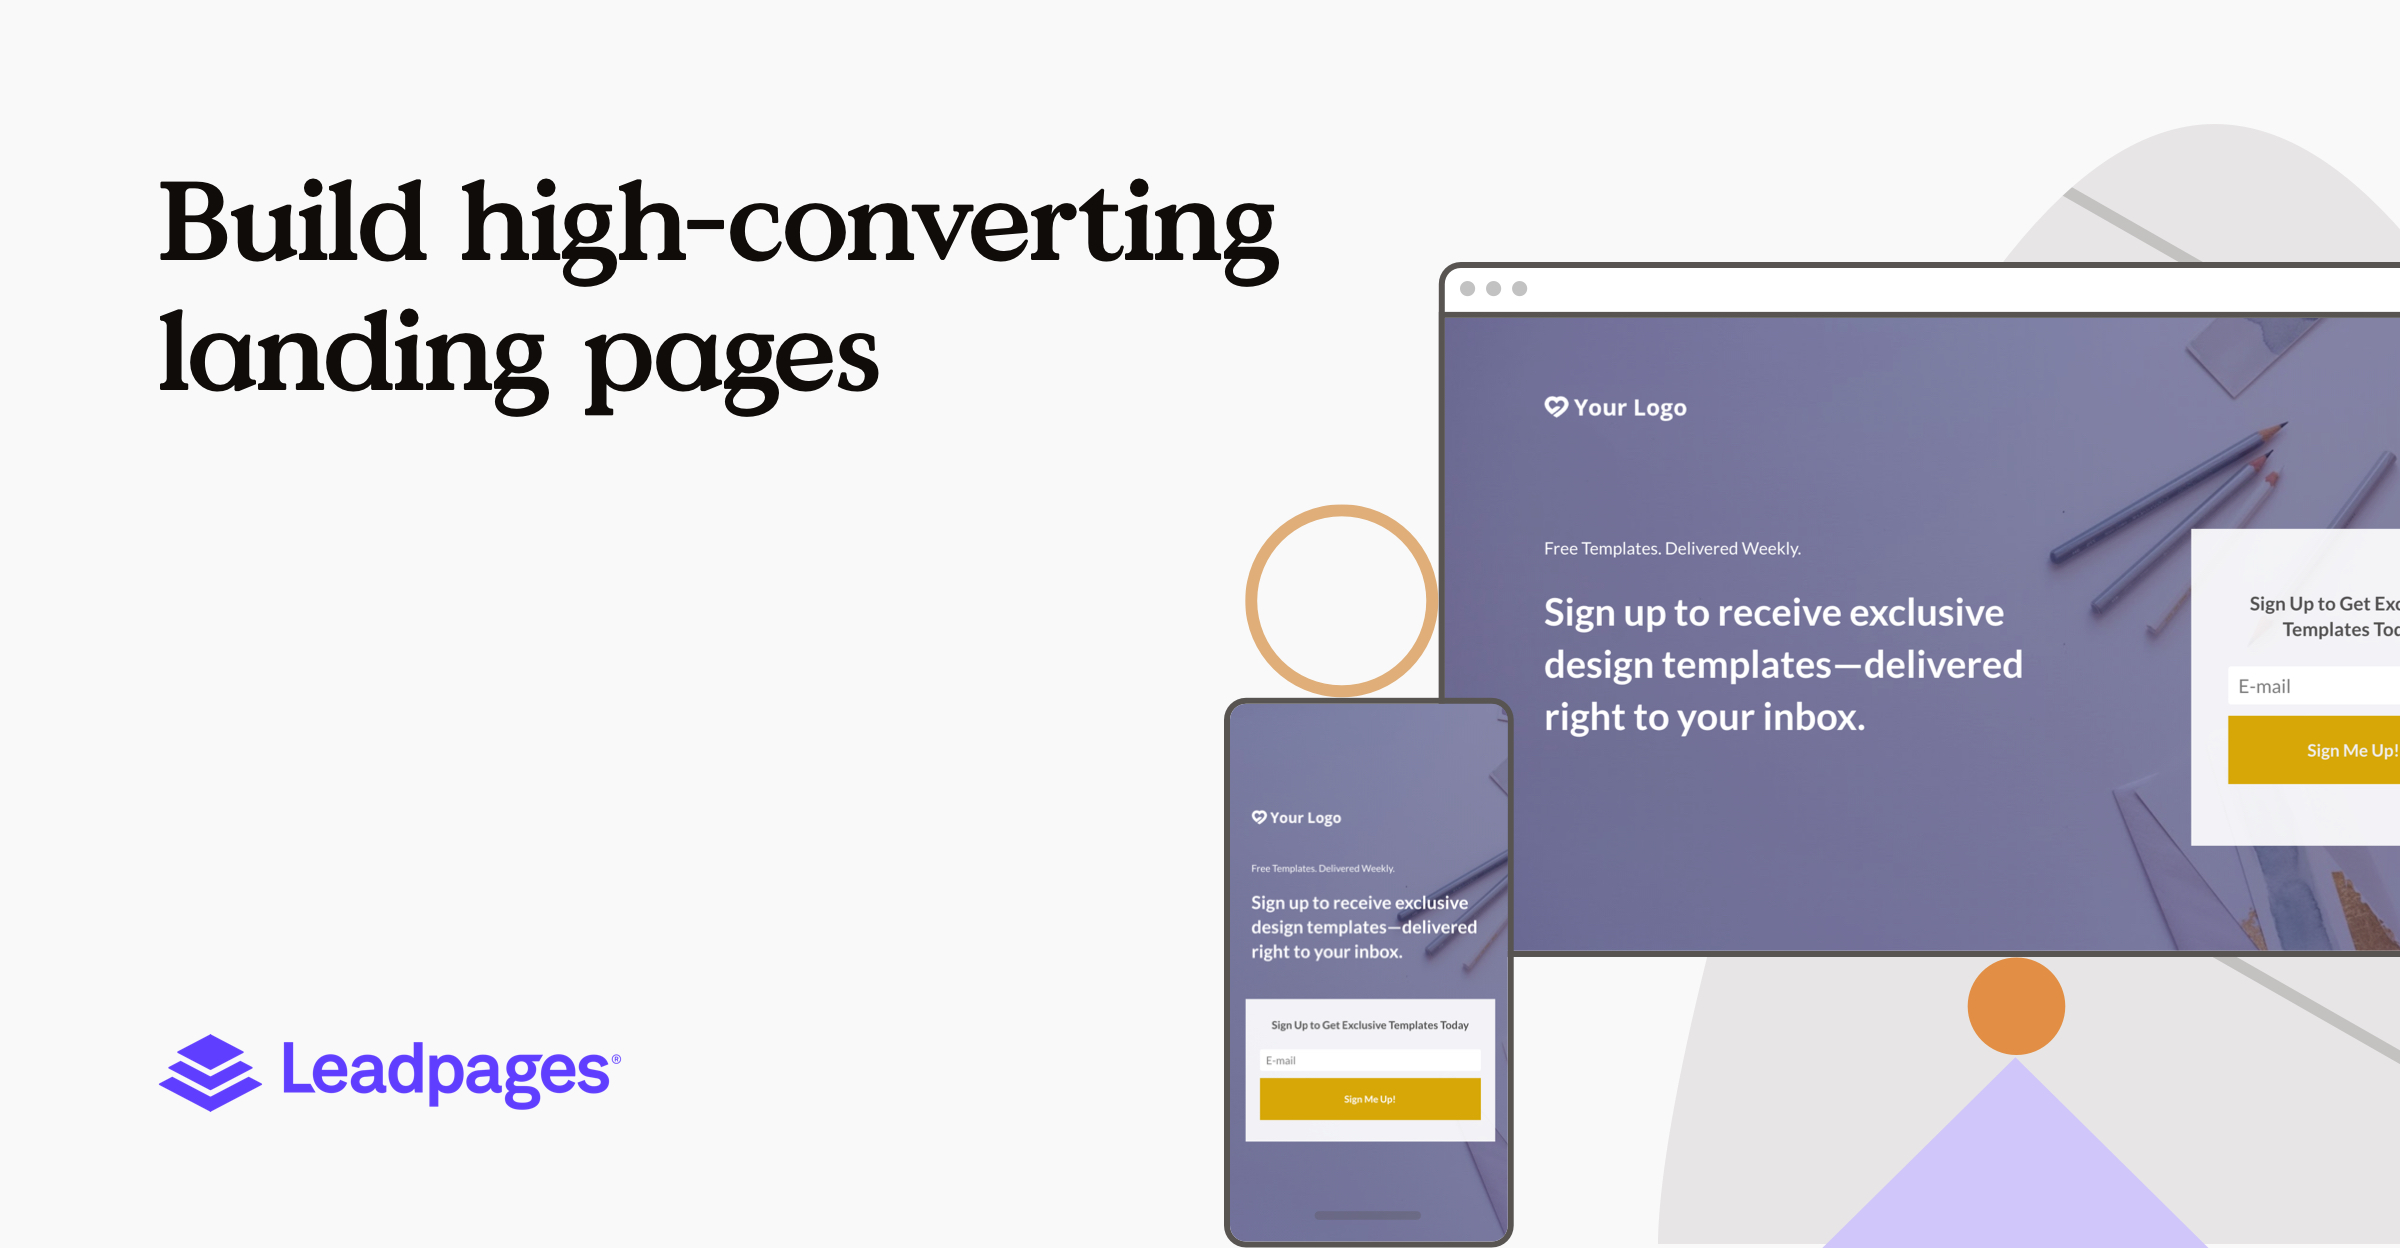 leadpages banner